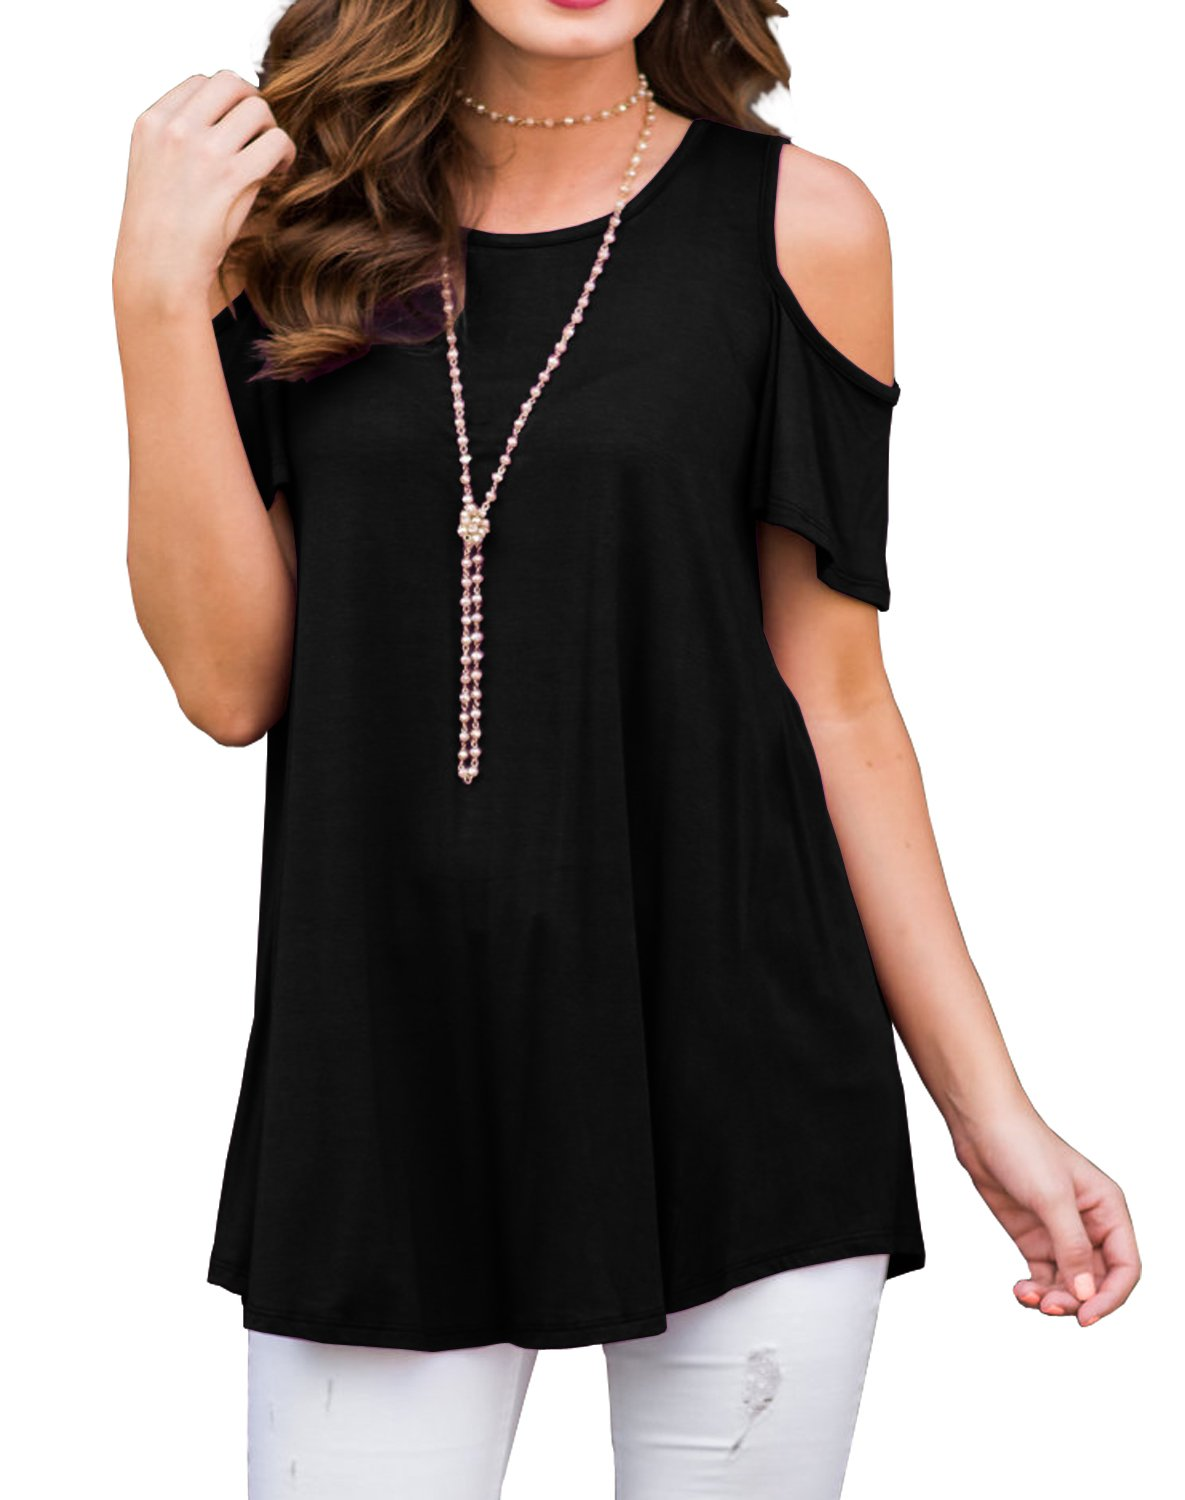 PrinStory Women's Short Sleeve Casual Cold Shoulder Tunic Tops Loose Blouse Shirts Black-XL